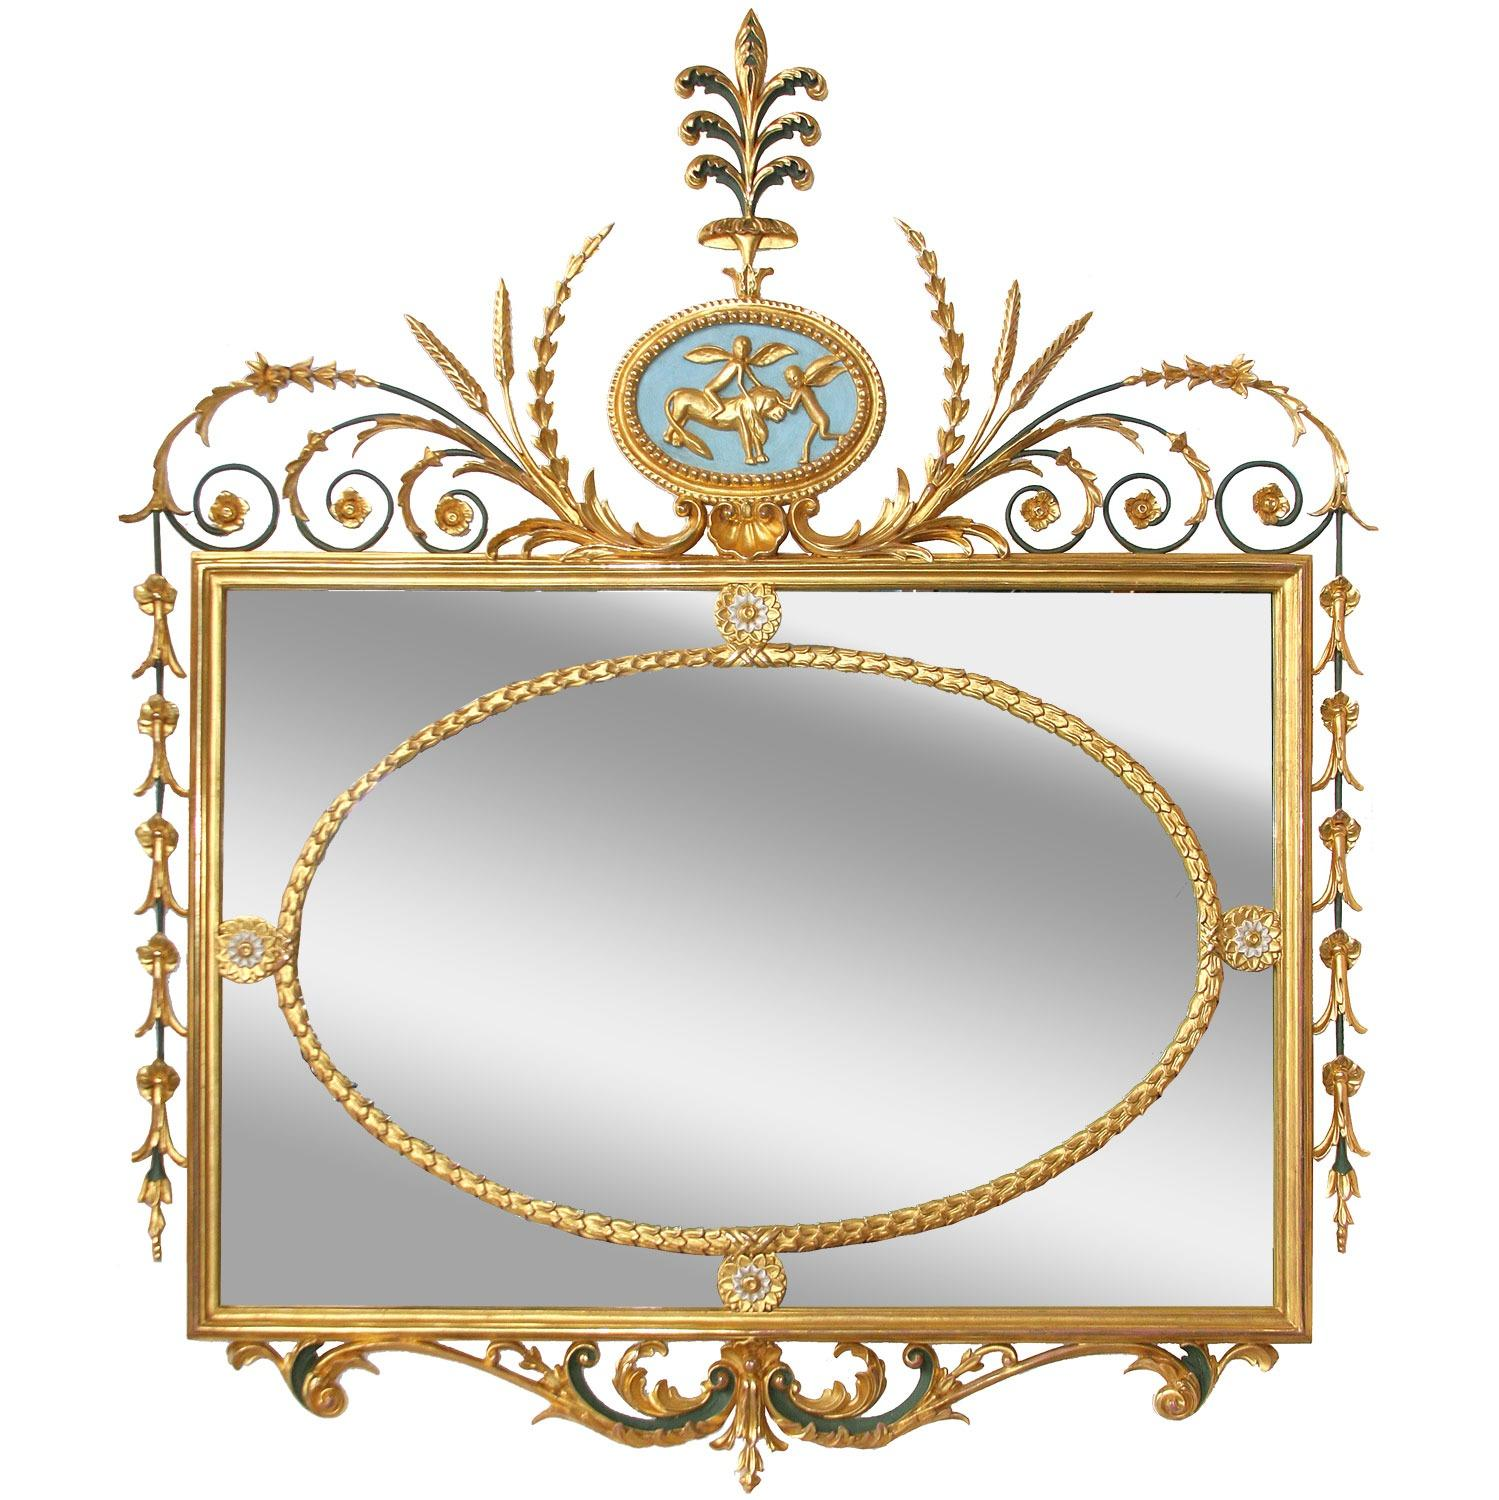 Bespoke water gilded and painted wall mirror